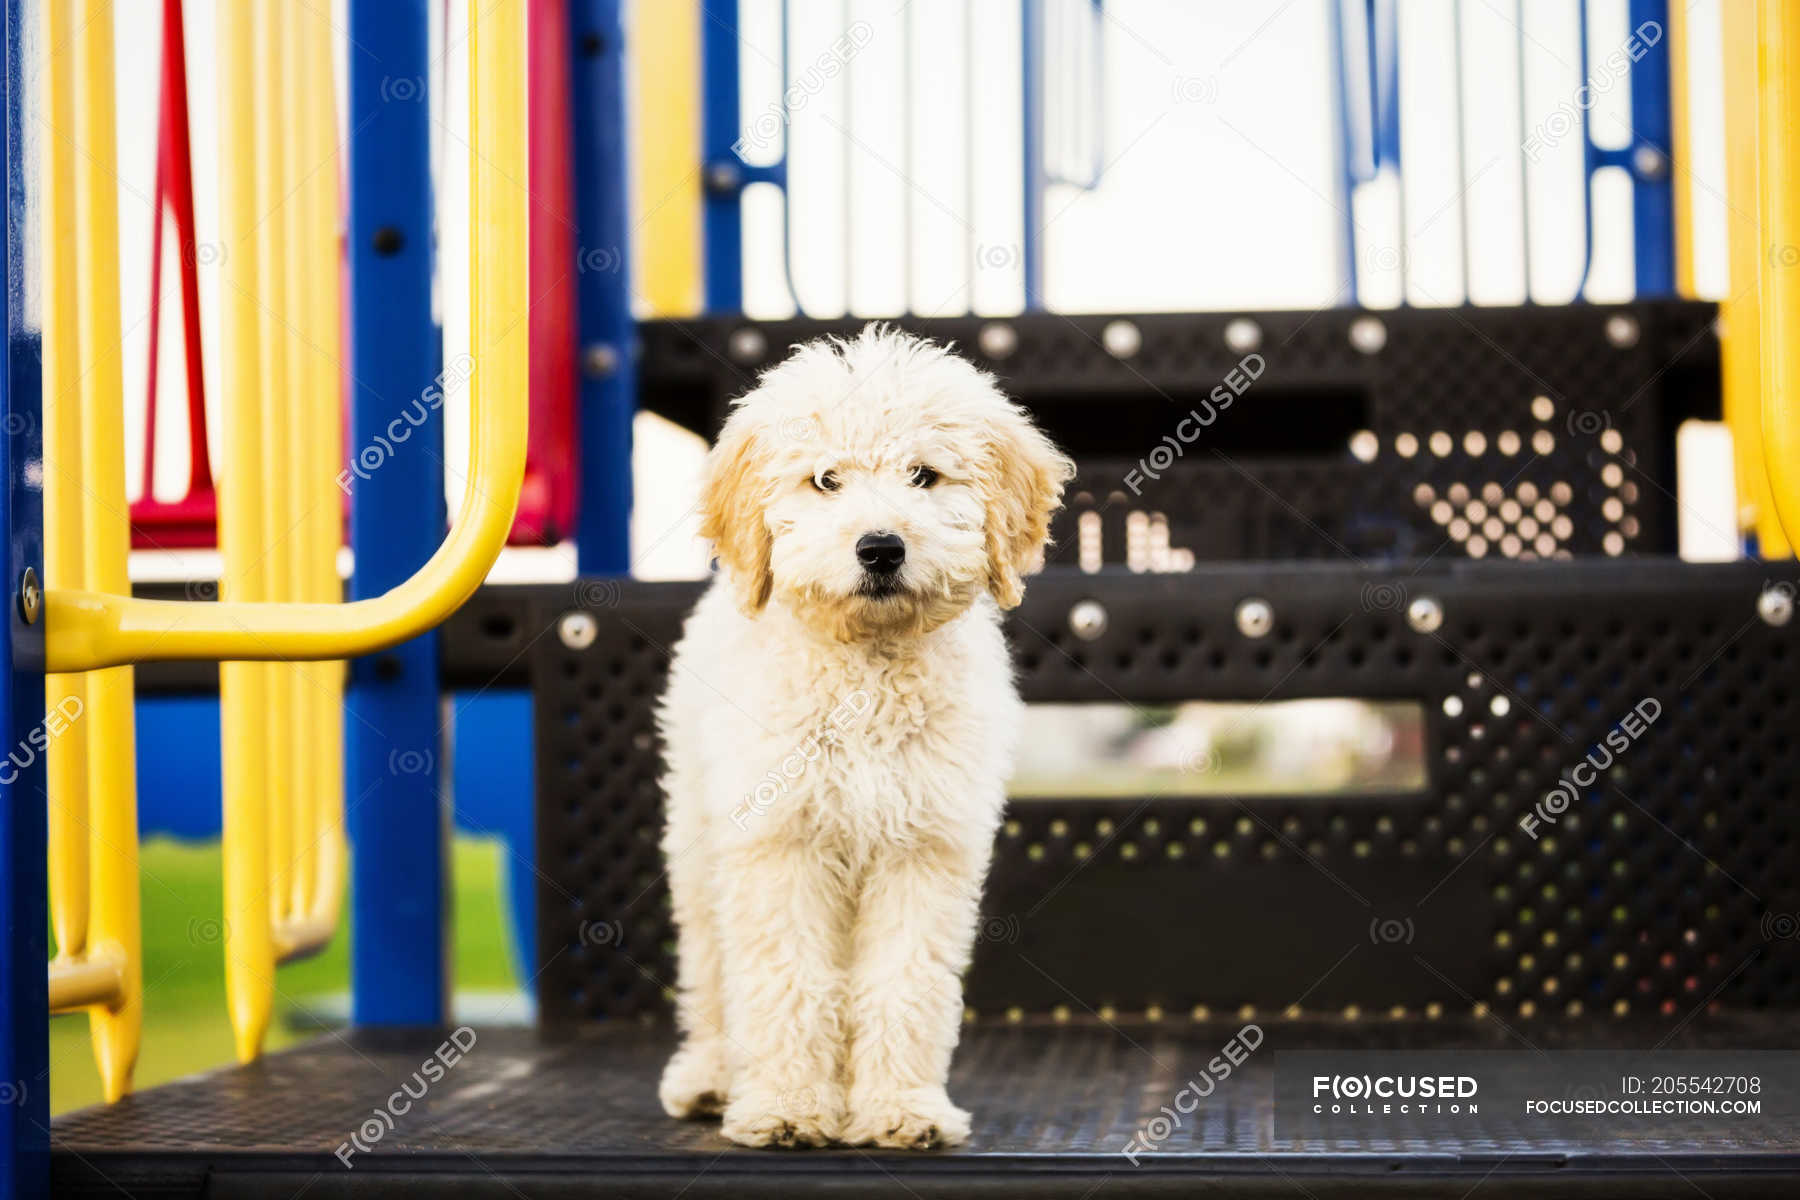 A Cute Poodle Standing On Some Playground Equipment And